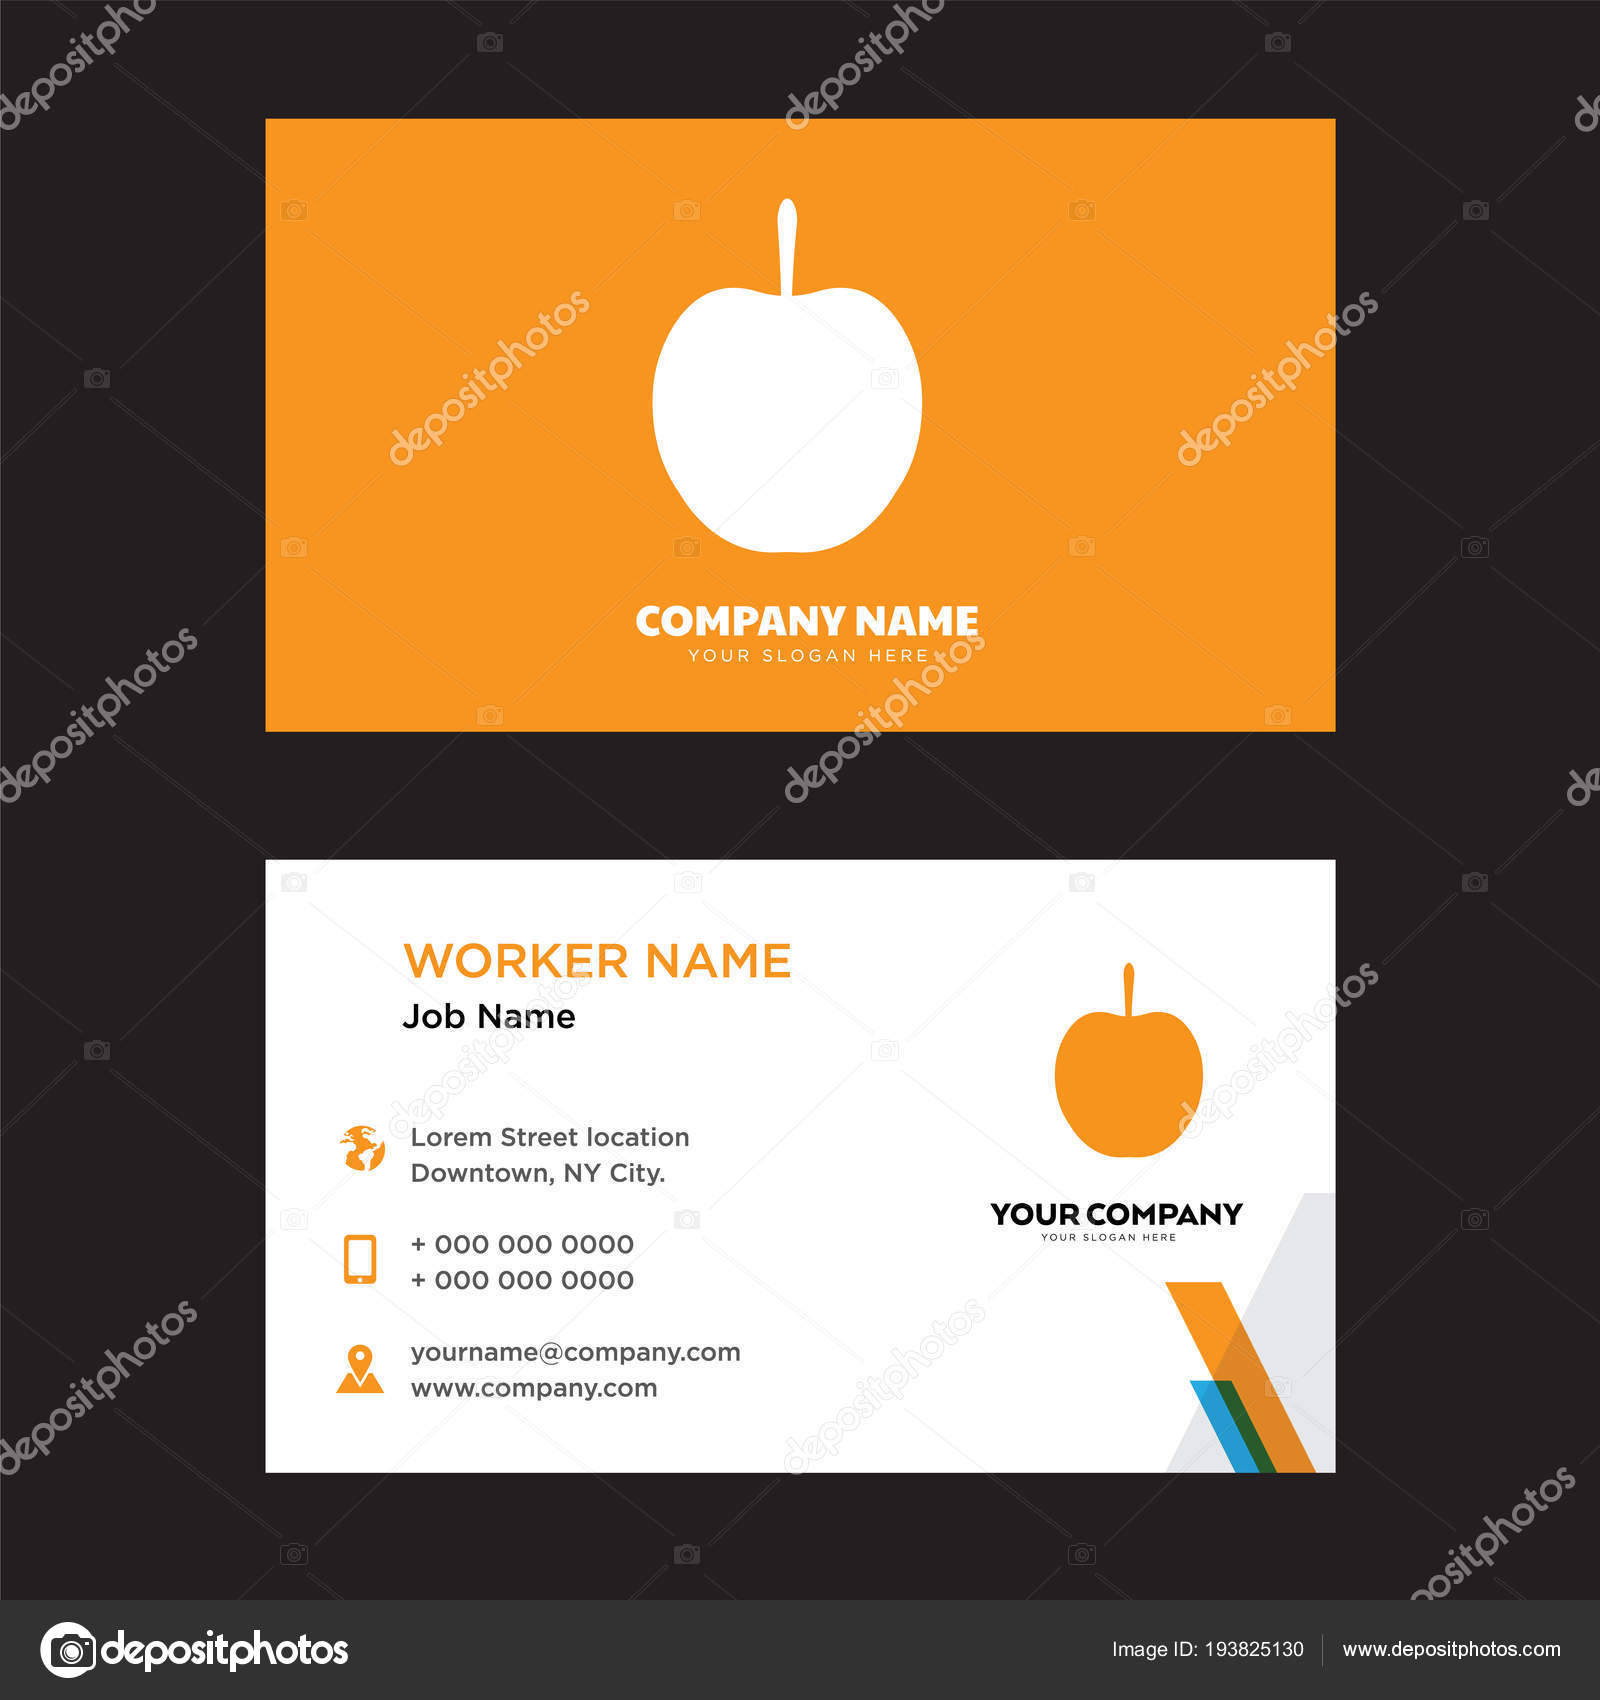 Apple business card design stock vector vectorbest 193825130 apple business card design template visiting for your company modern creative and clean identity card vector vector by vectorbest colourmoves